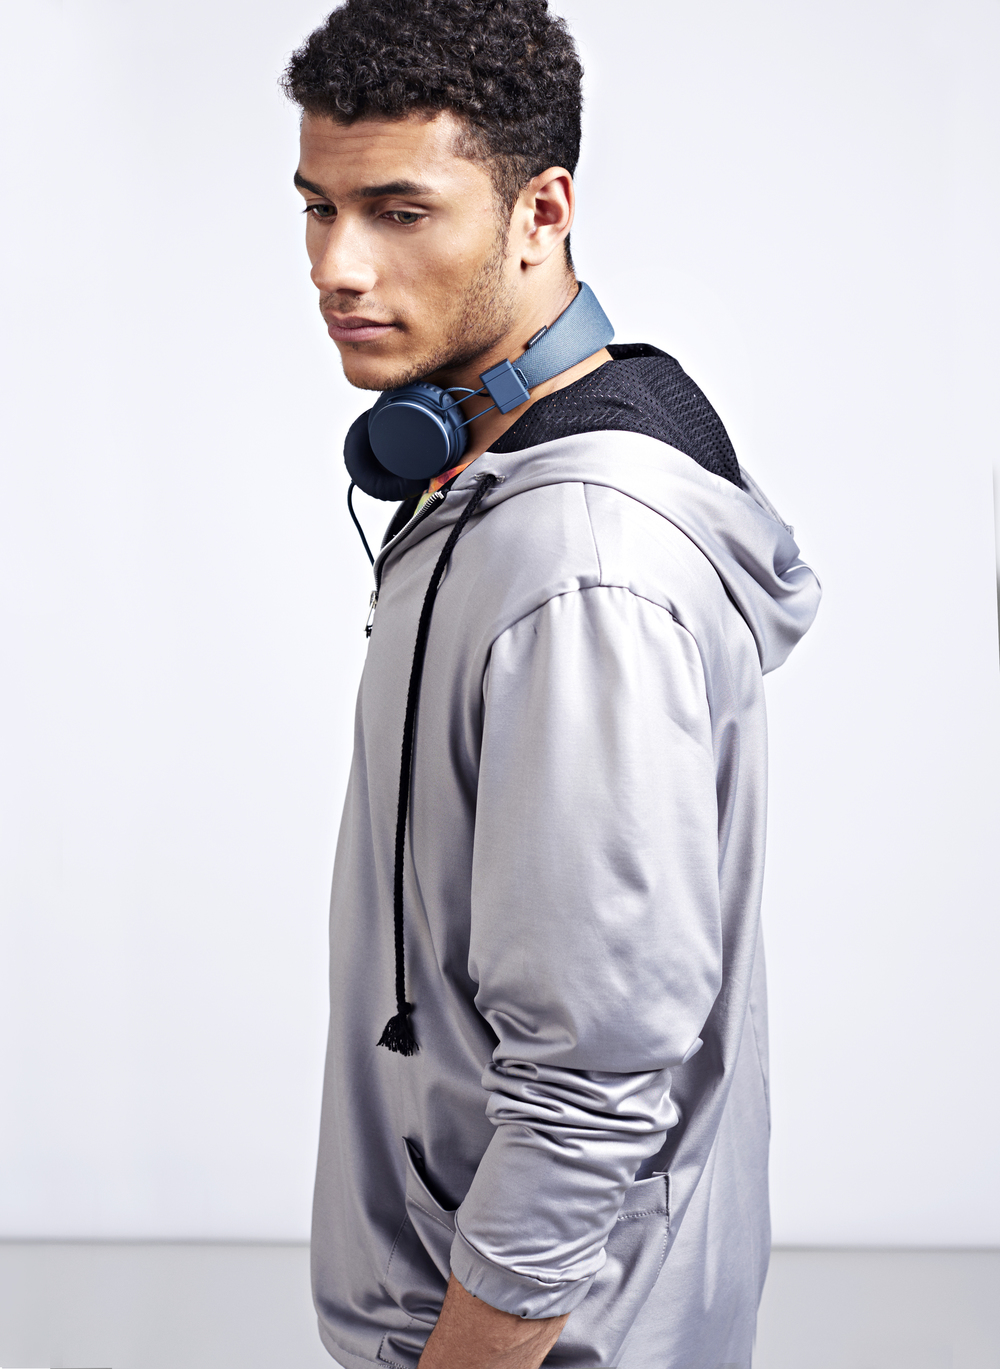 050614_SH_MENS_LOOKBOOK_KB0515_RT.jpg